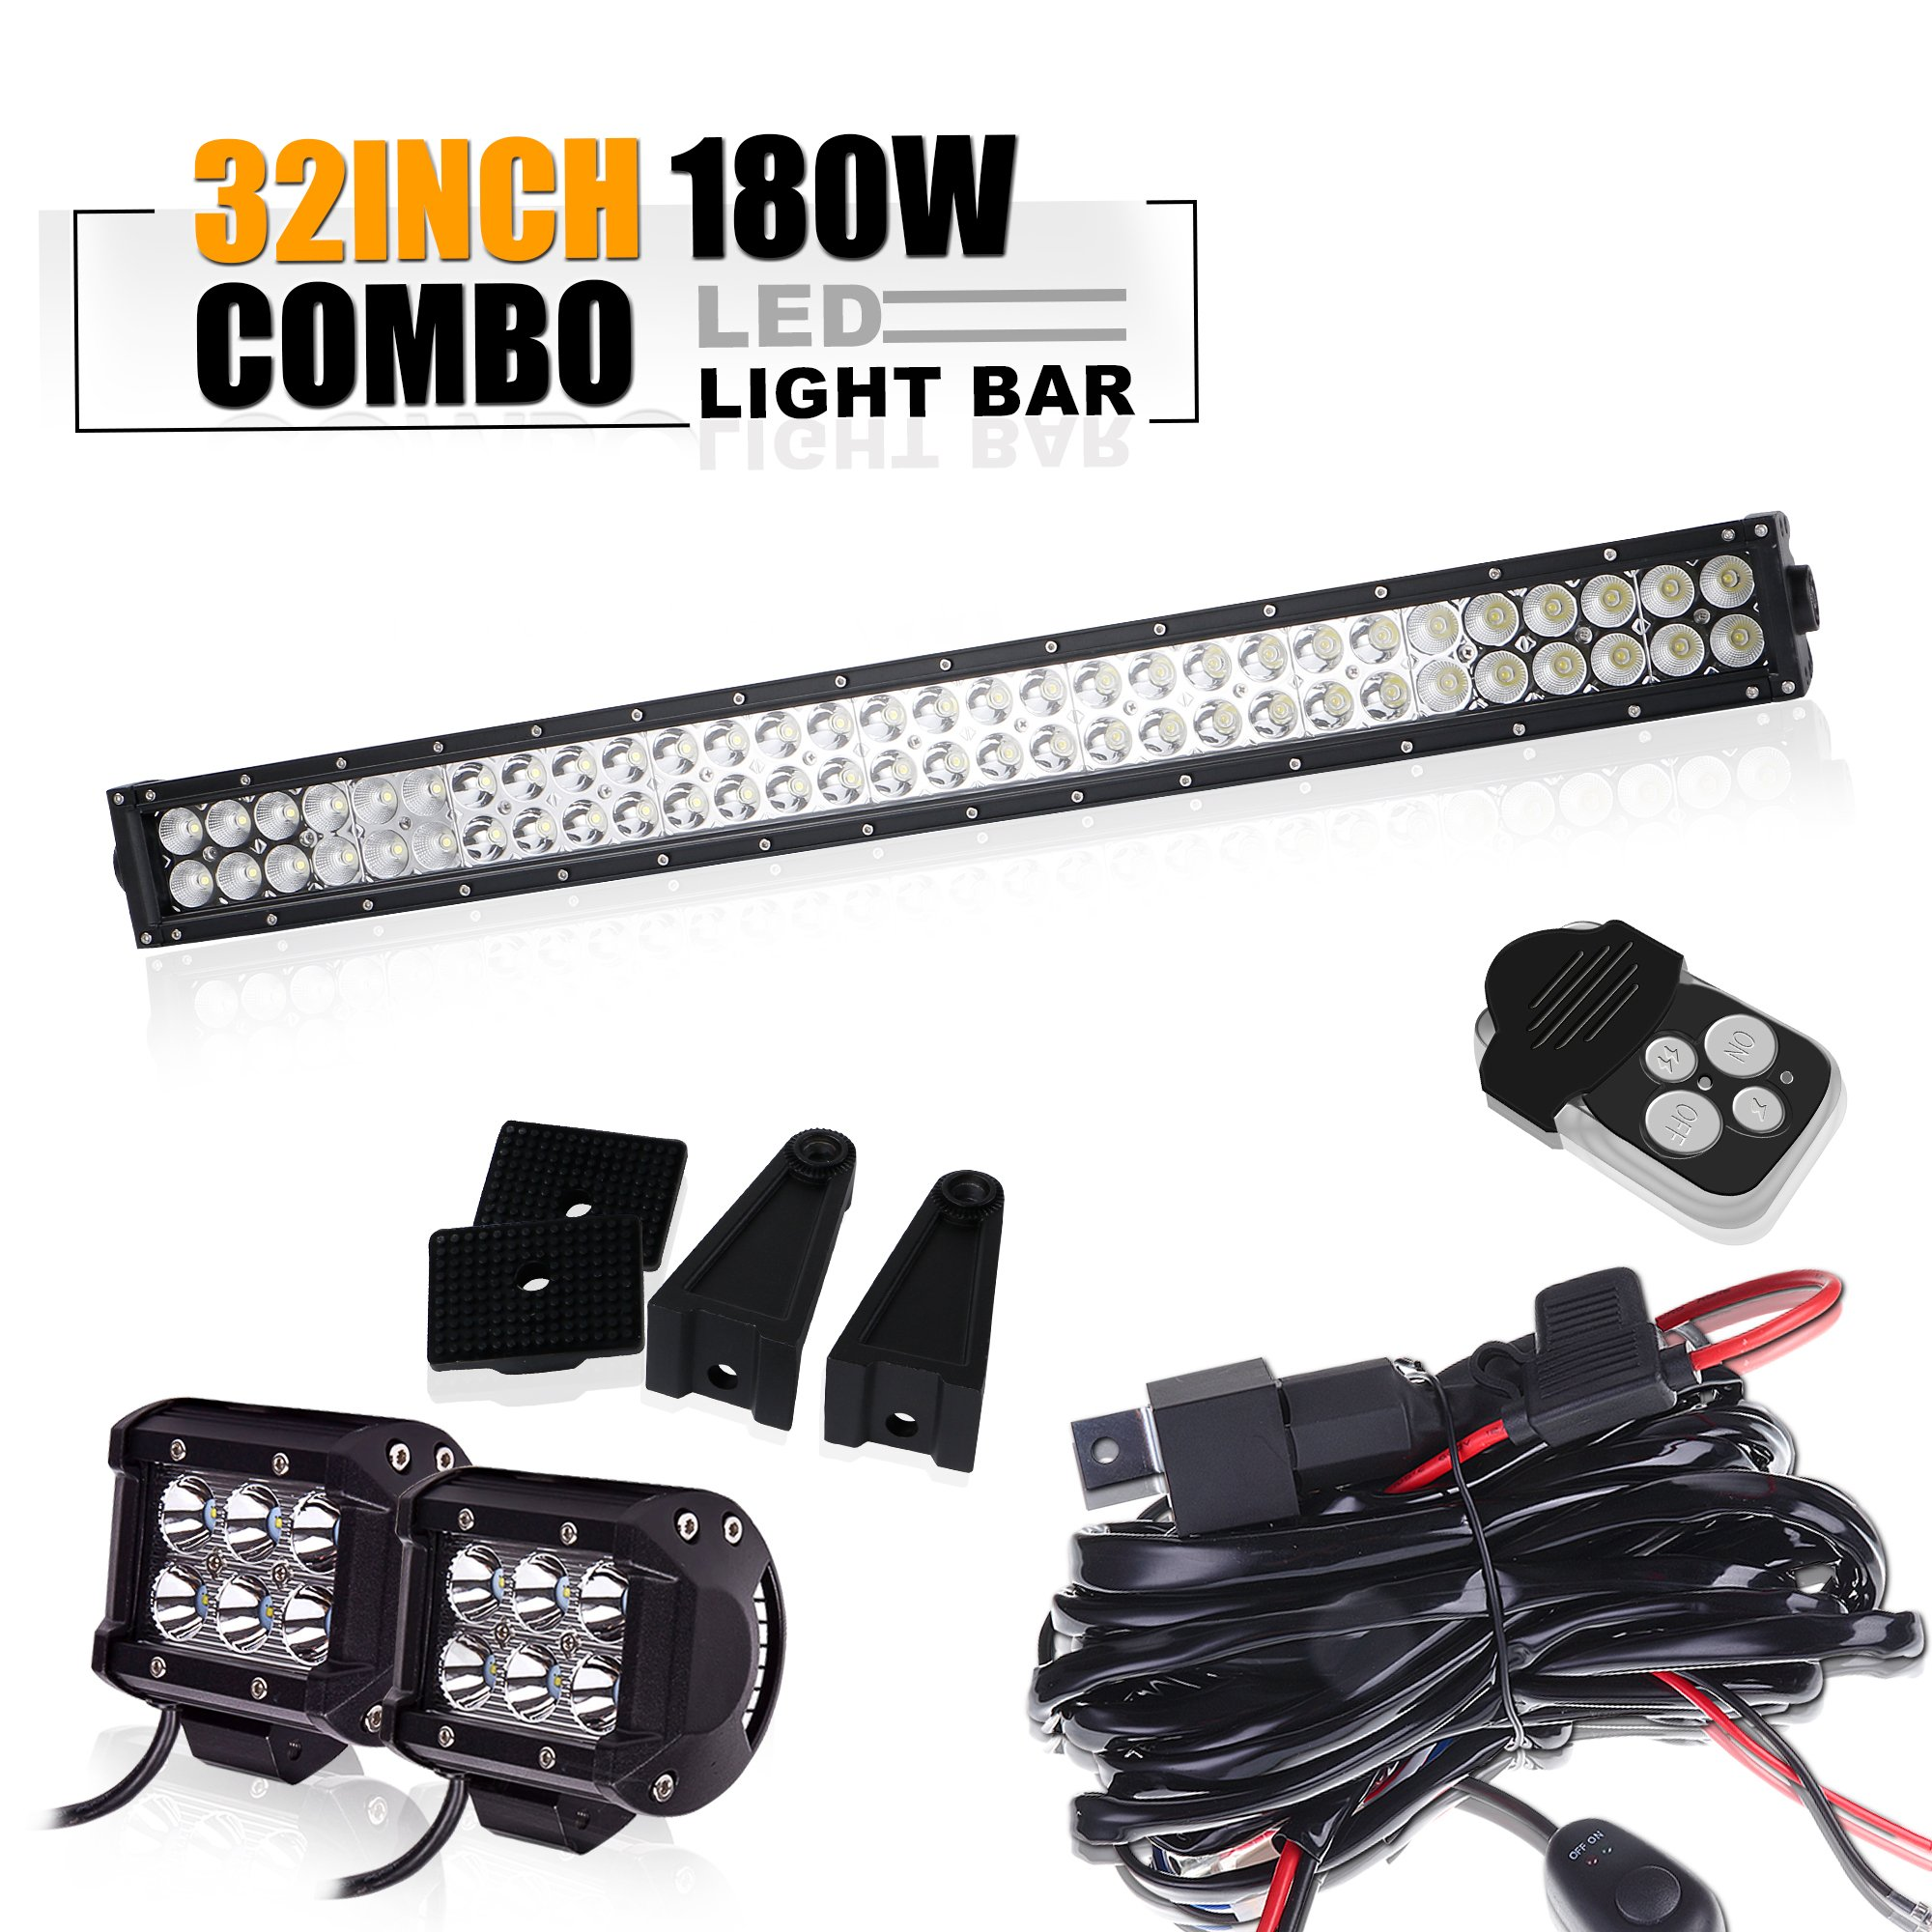 "32"" LED Light Bar+4"" lights+wiring kit UTV Yamaha Rhino Kawasaki 660 700 ATV"